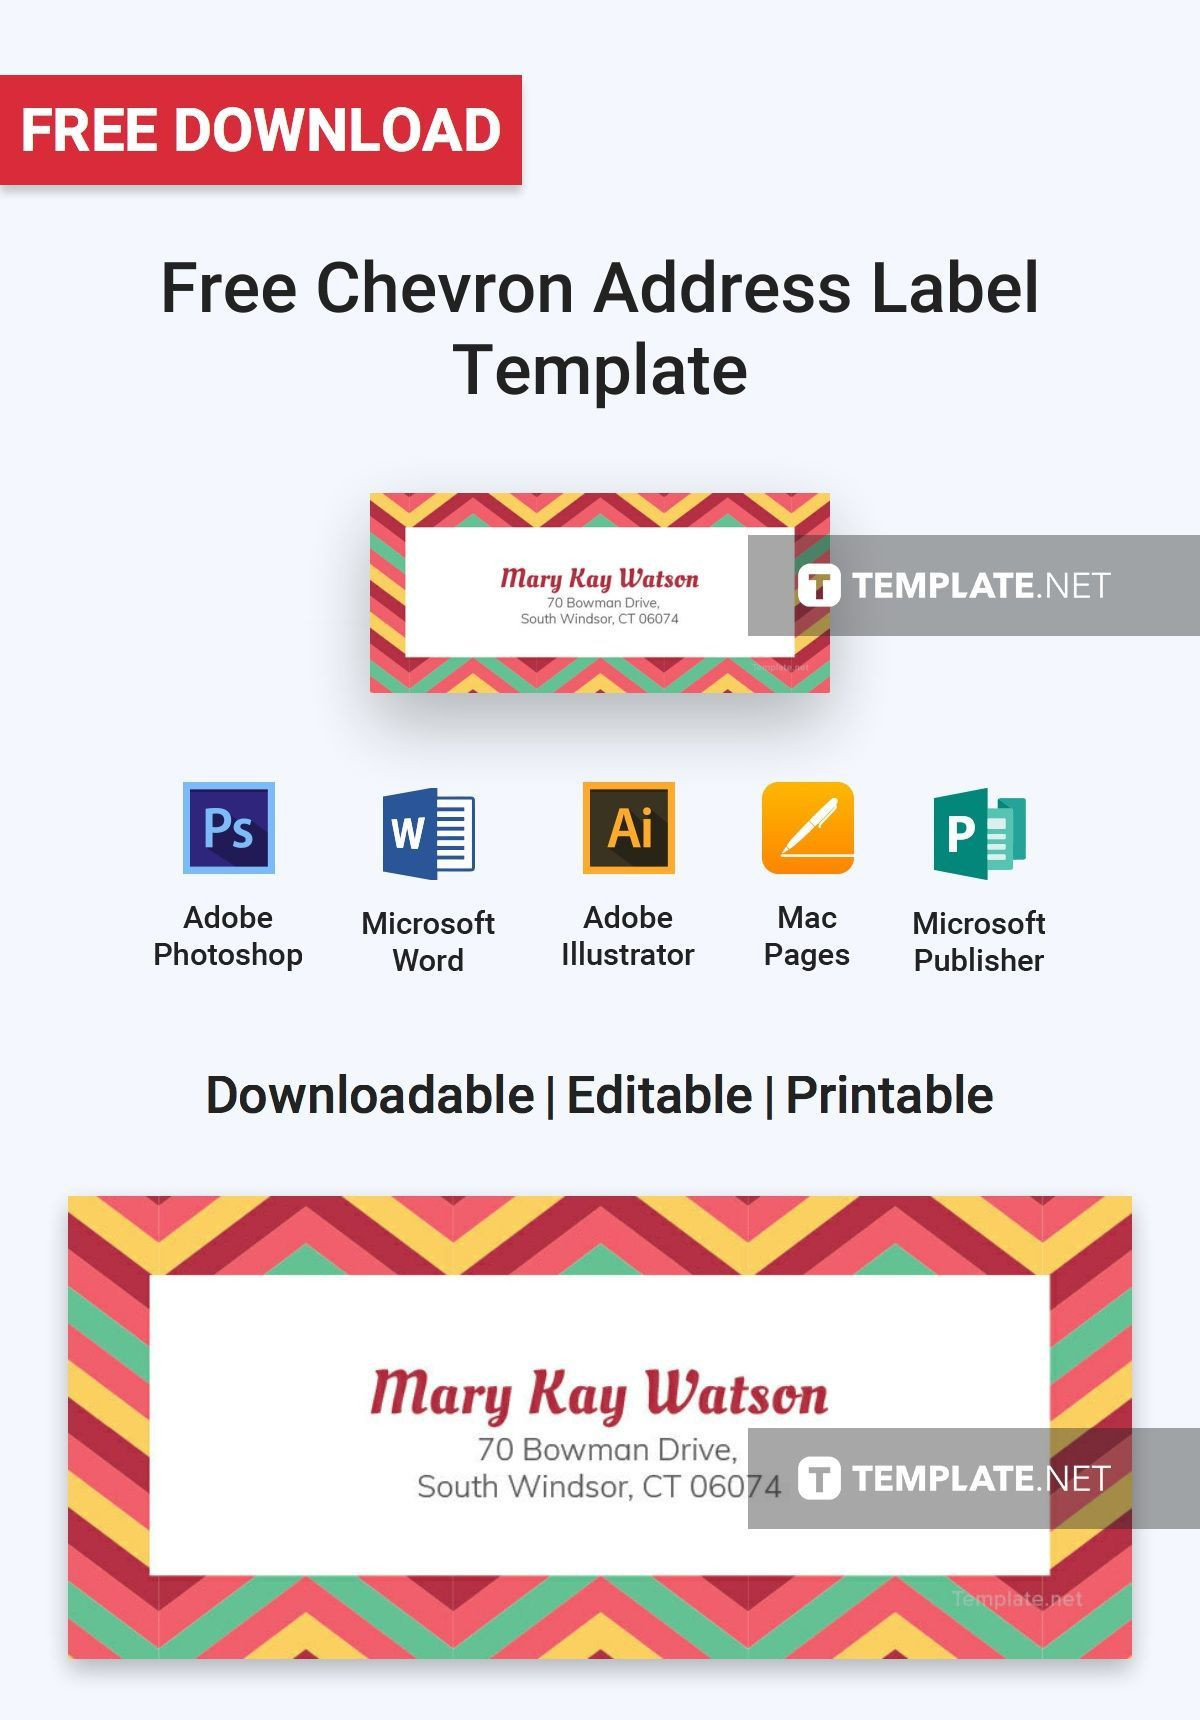 005 Breathtaking Addres Label Template For Mac Page Sample  Return Avery 5160Full